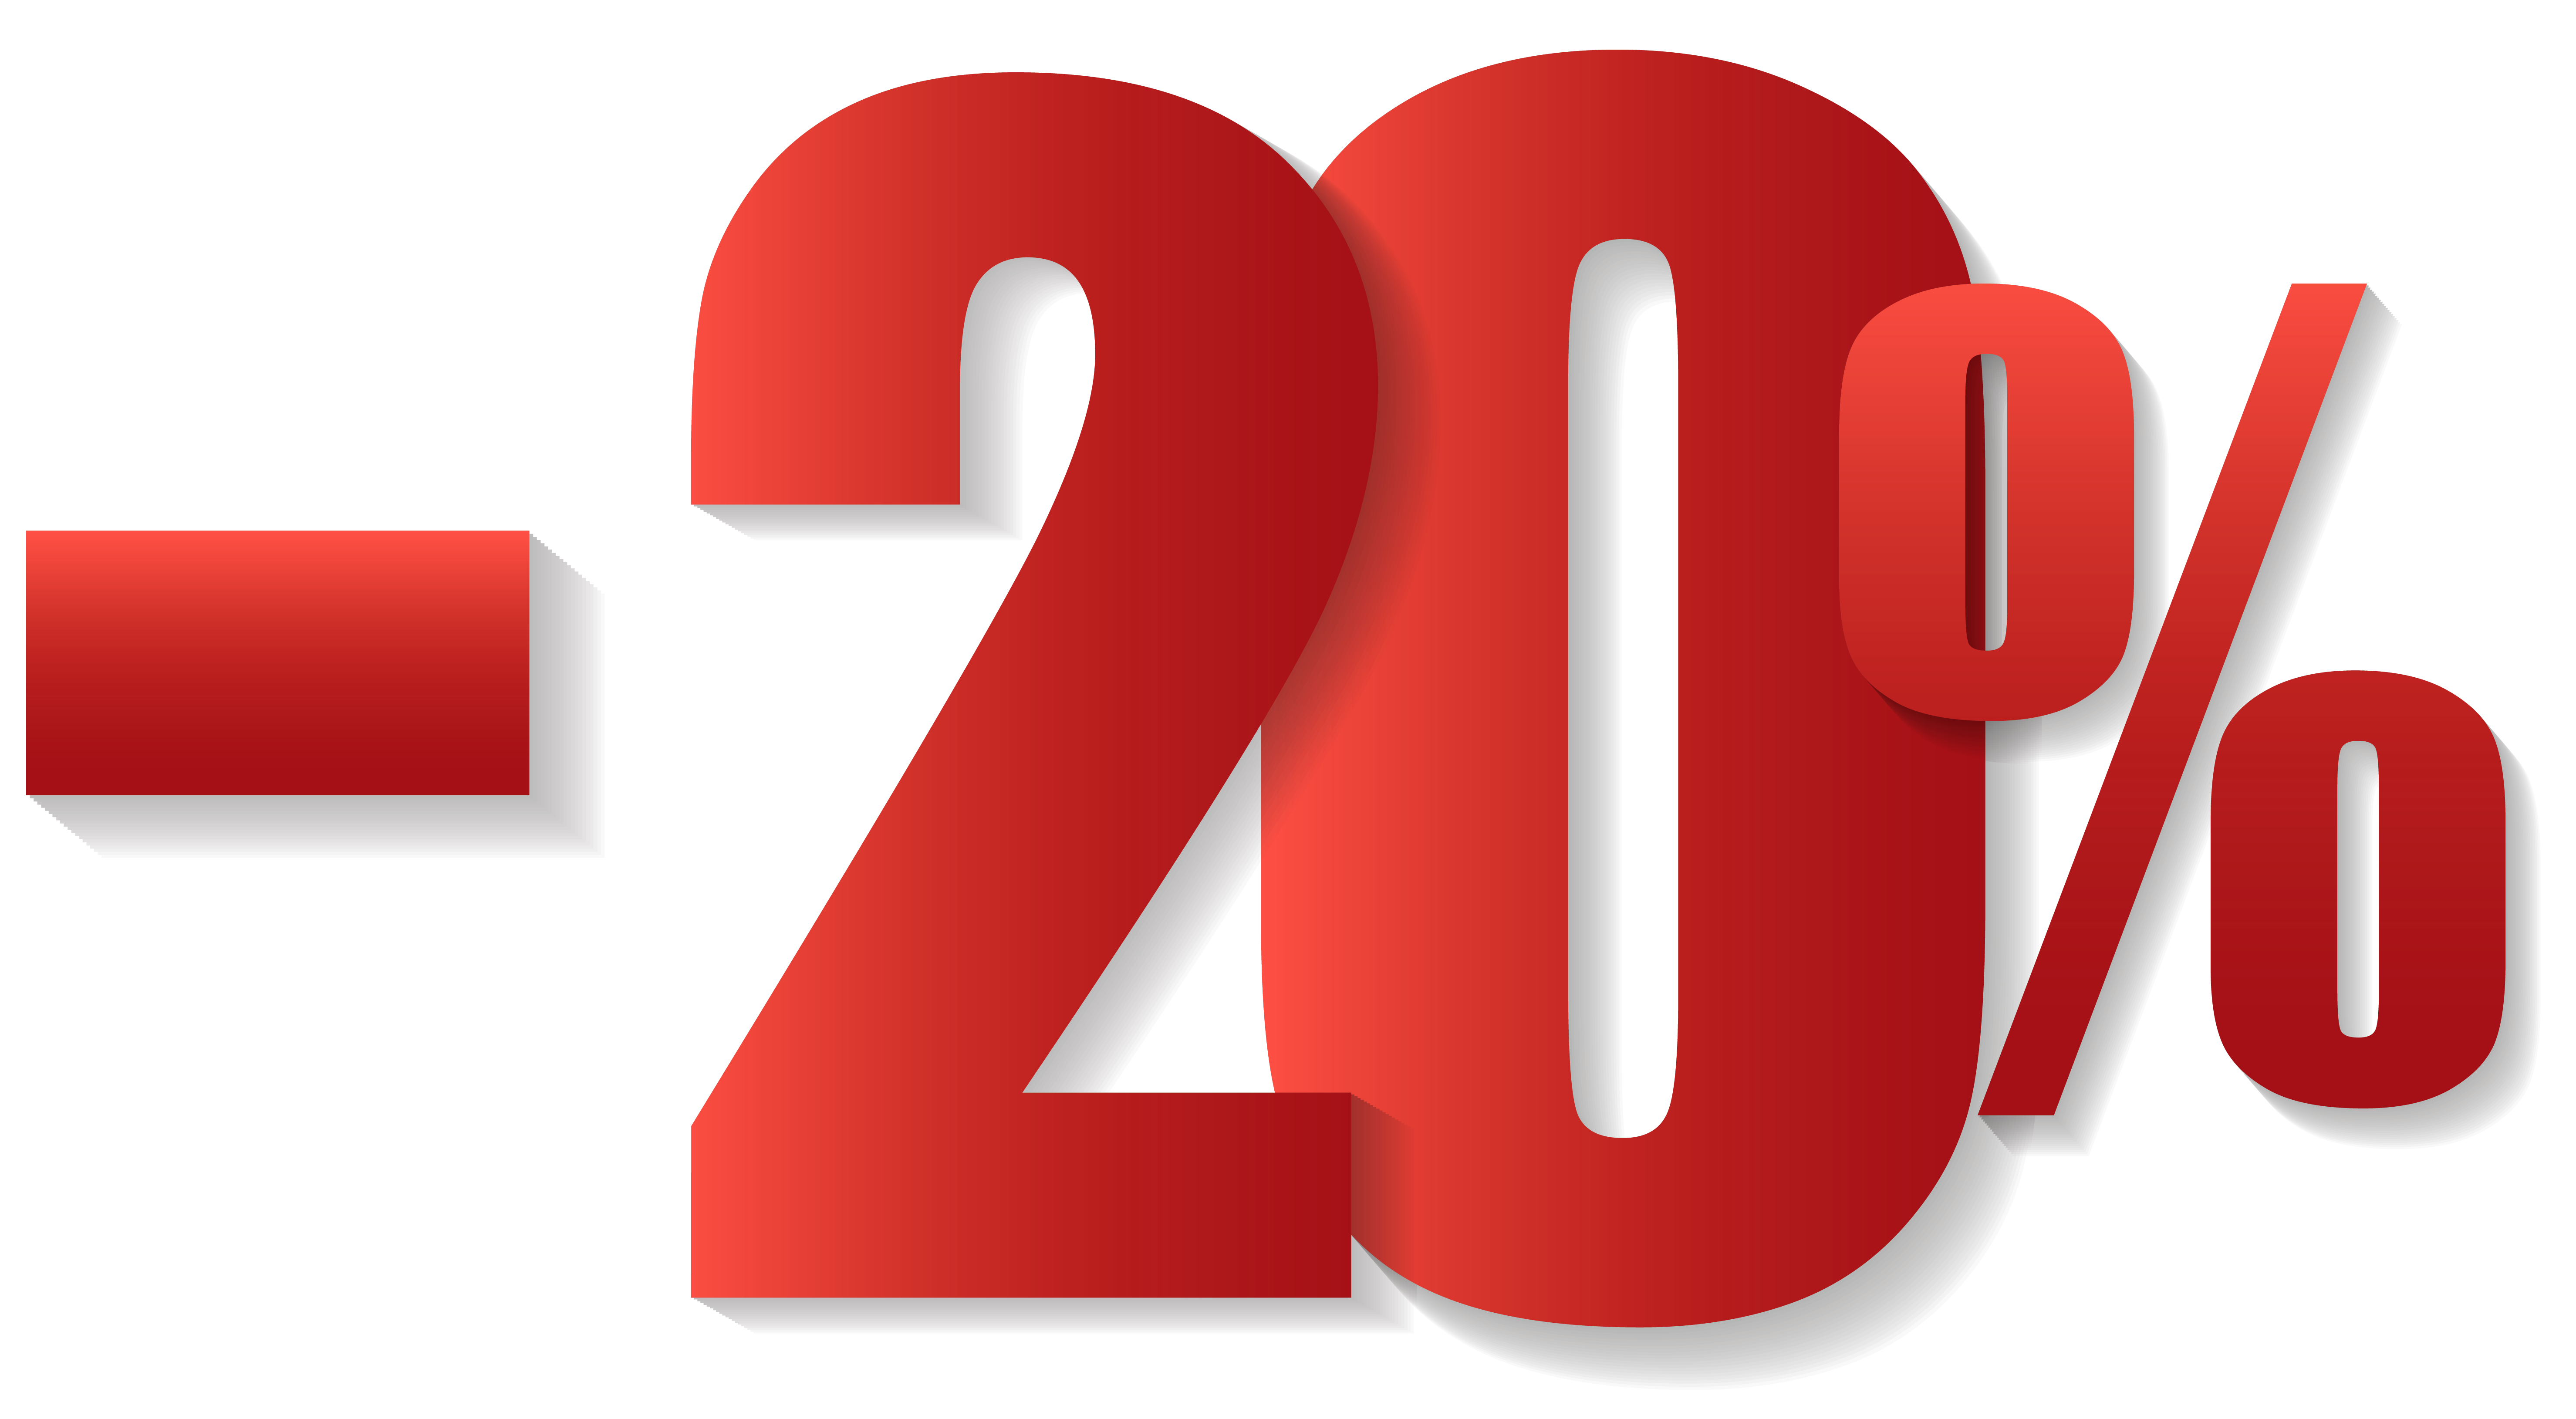 20% Off Sale PNG Clipart Image.